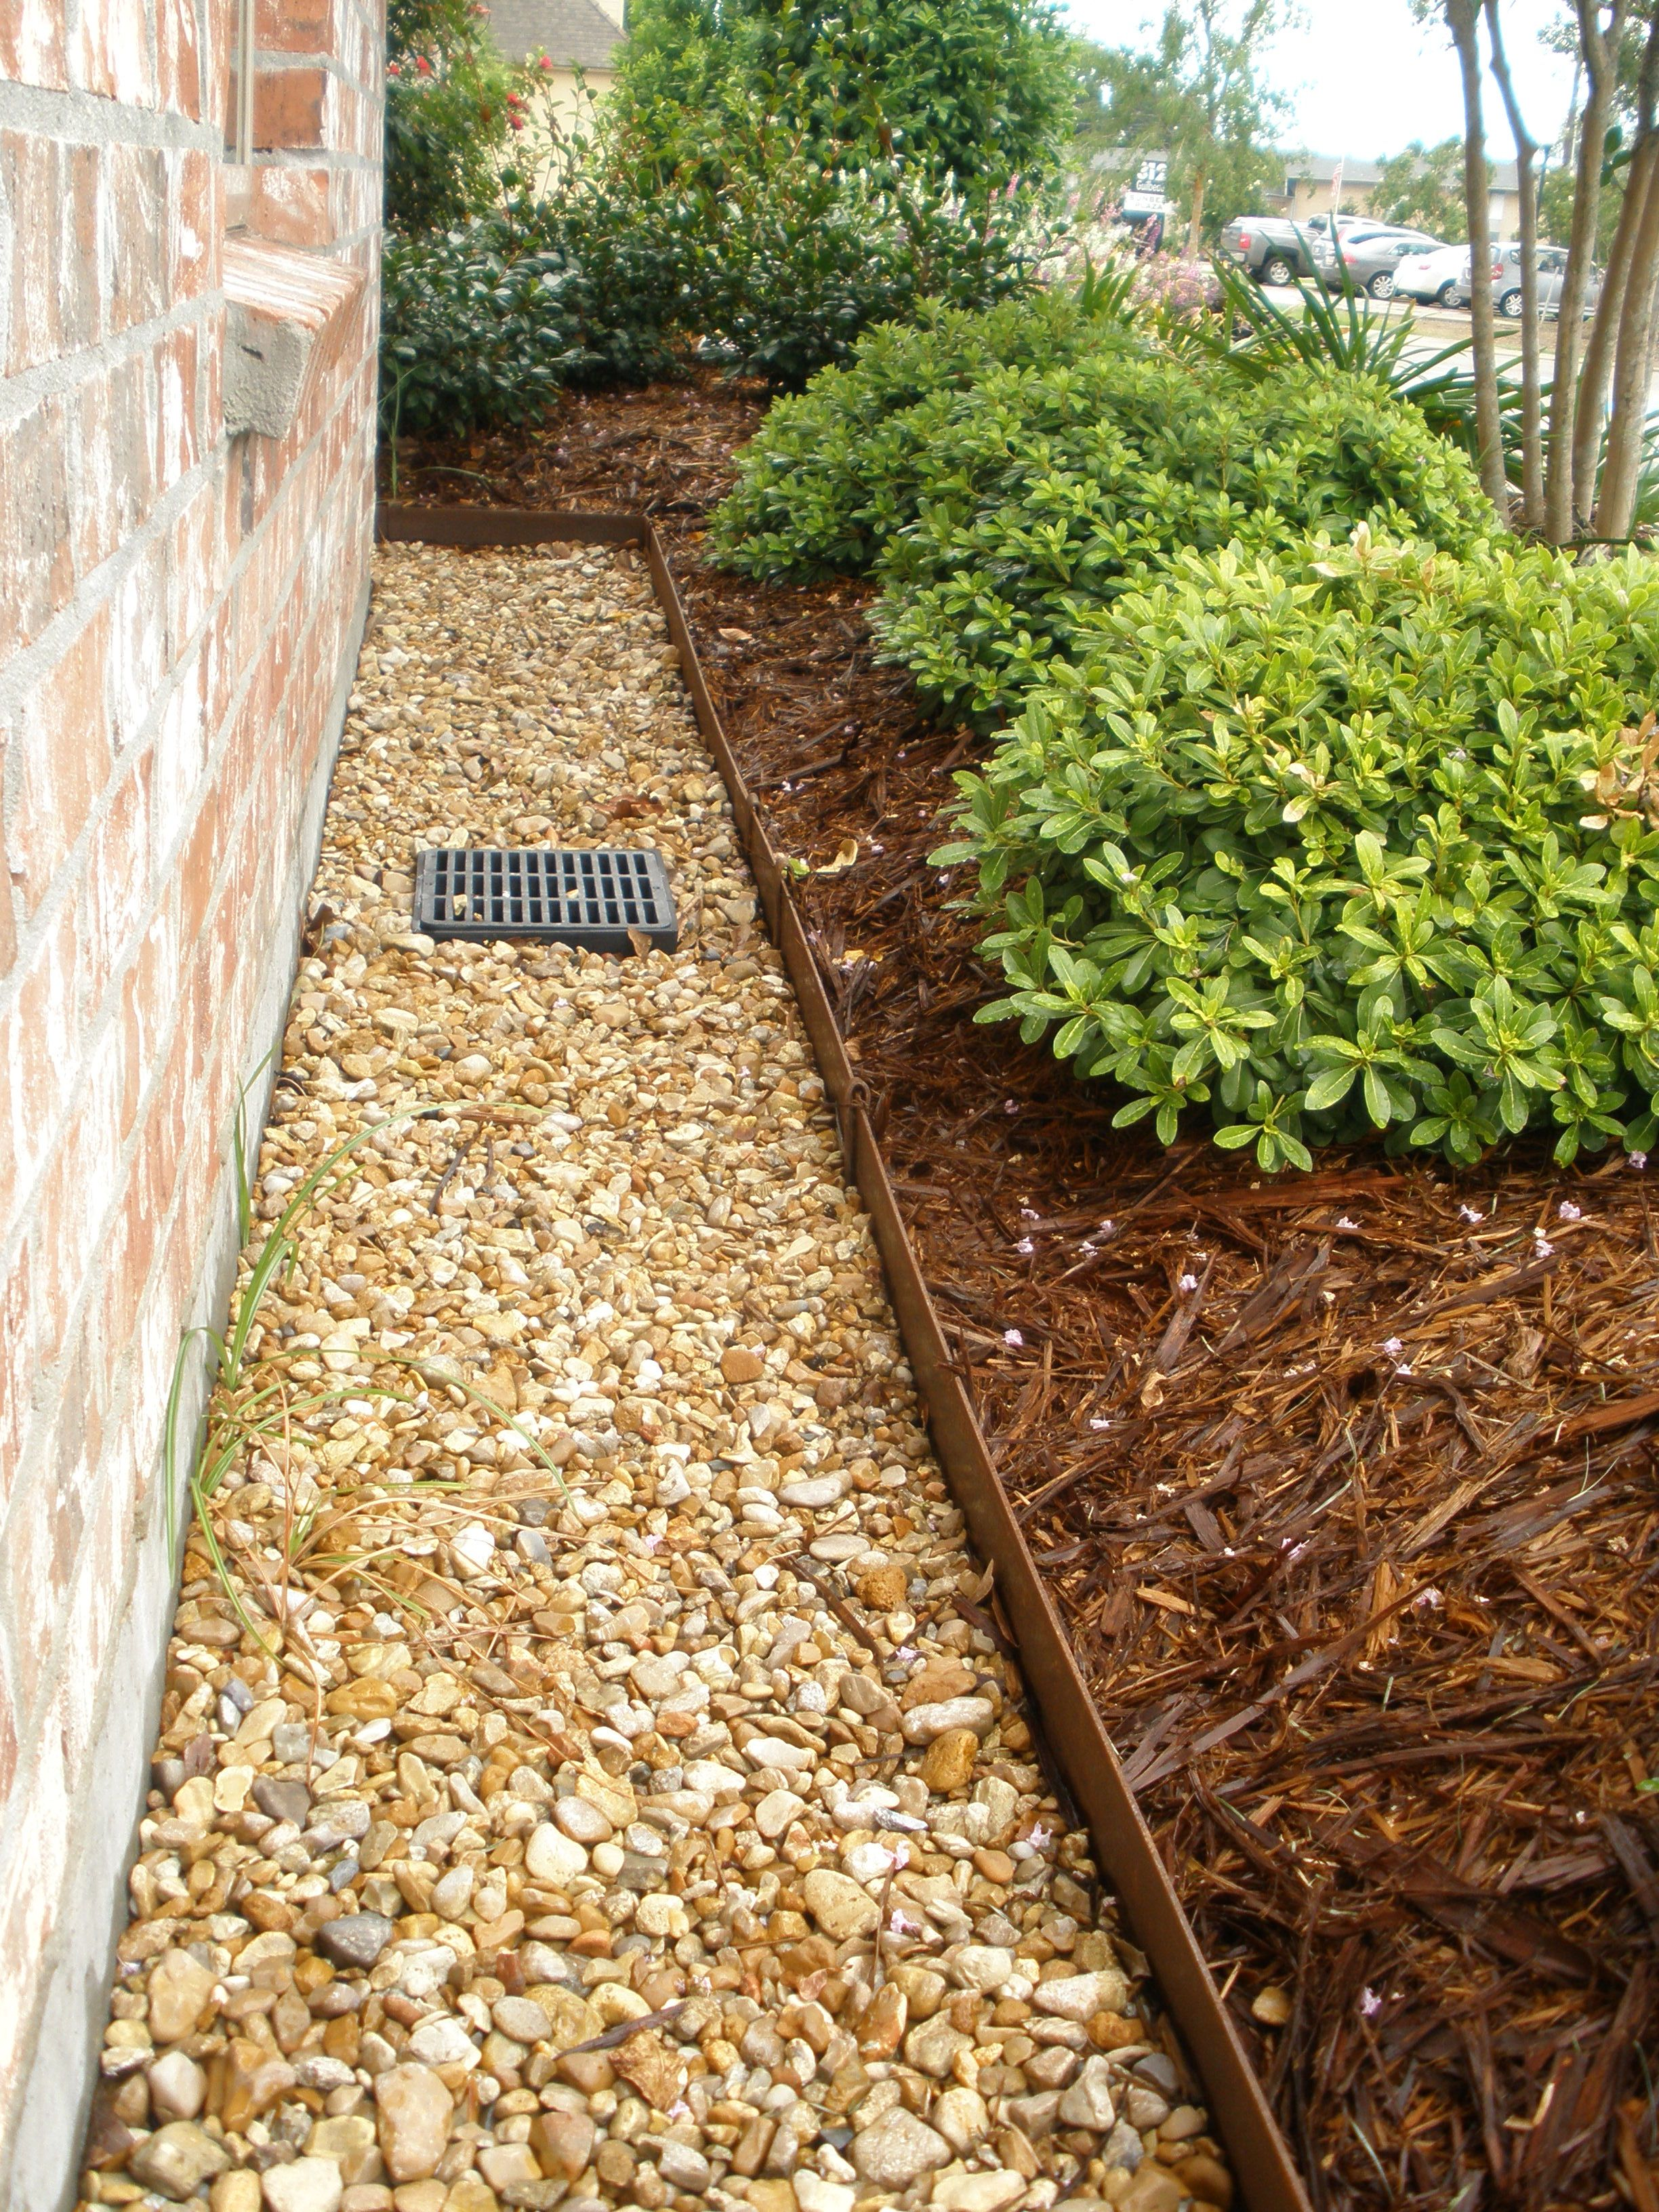 Gulf Coast Landscapes Has Years Experience In Lafayette. Call For  Landscaping U0026 Yard Maintenance, Outdoor Lighting, Patios, Drainage,  Irrigation U0026